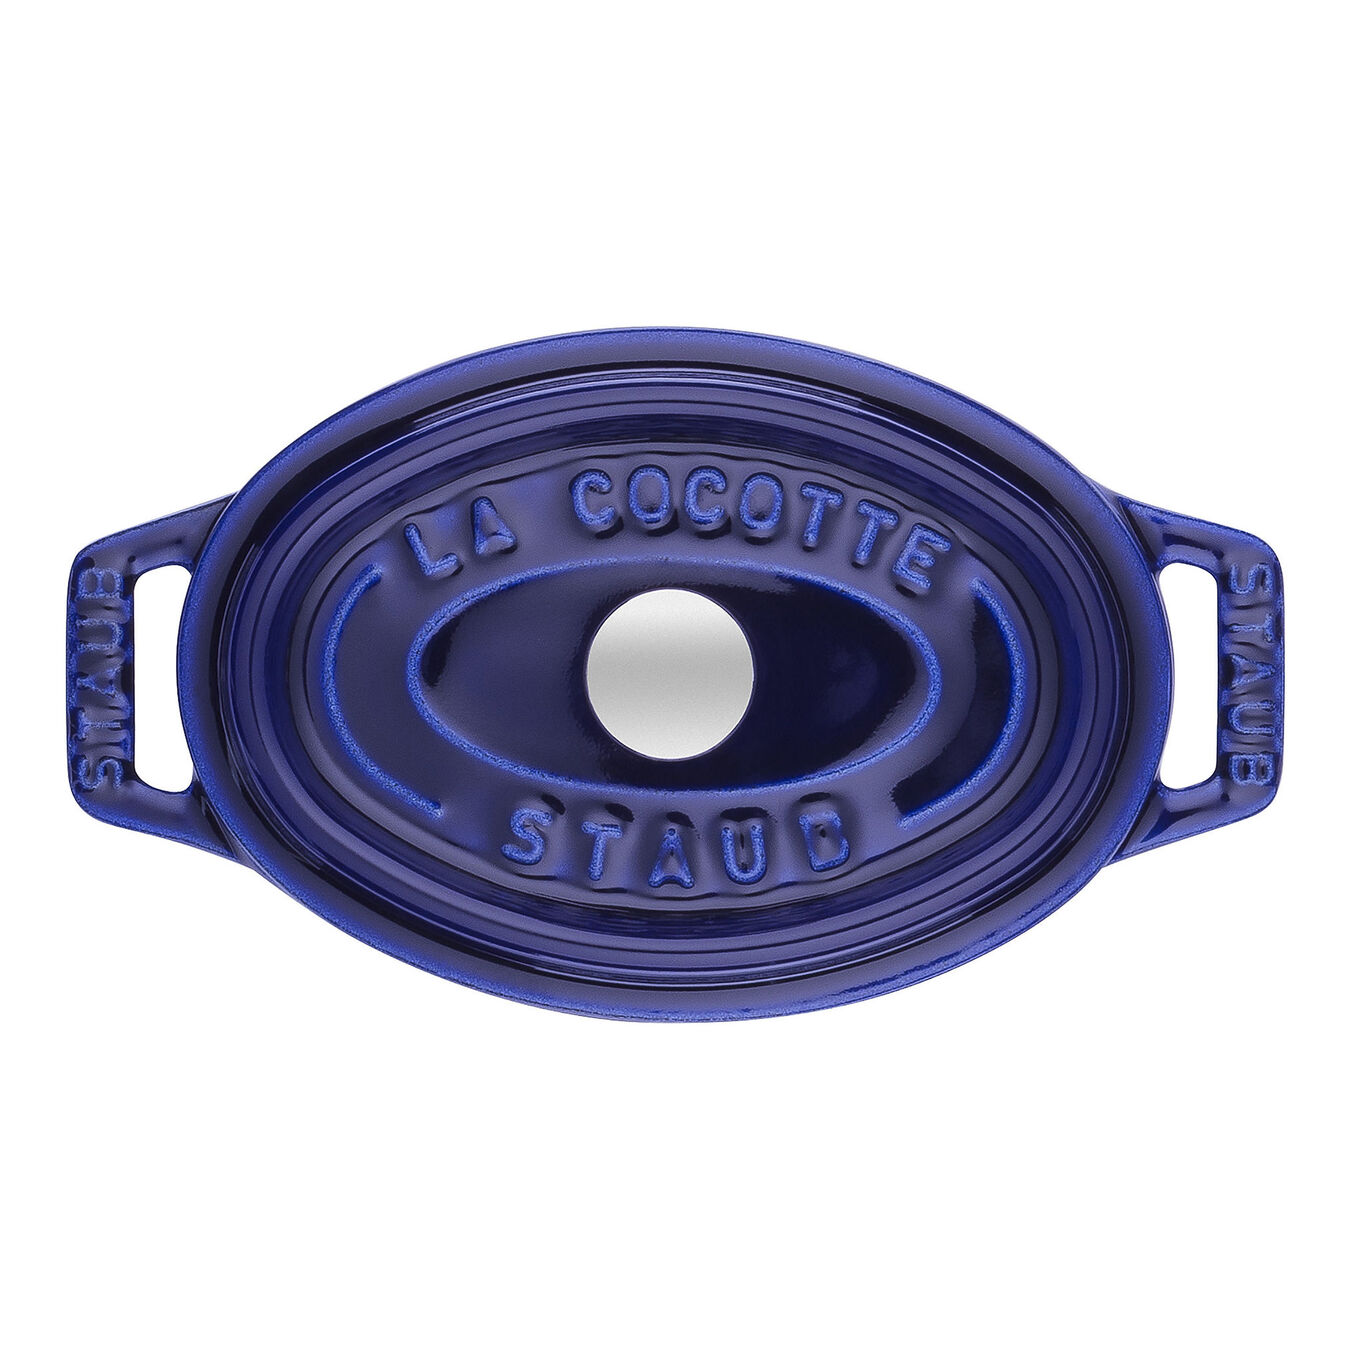 250 ml Cast iron oval Mini Cocotte, Dark-Blue,,large 2